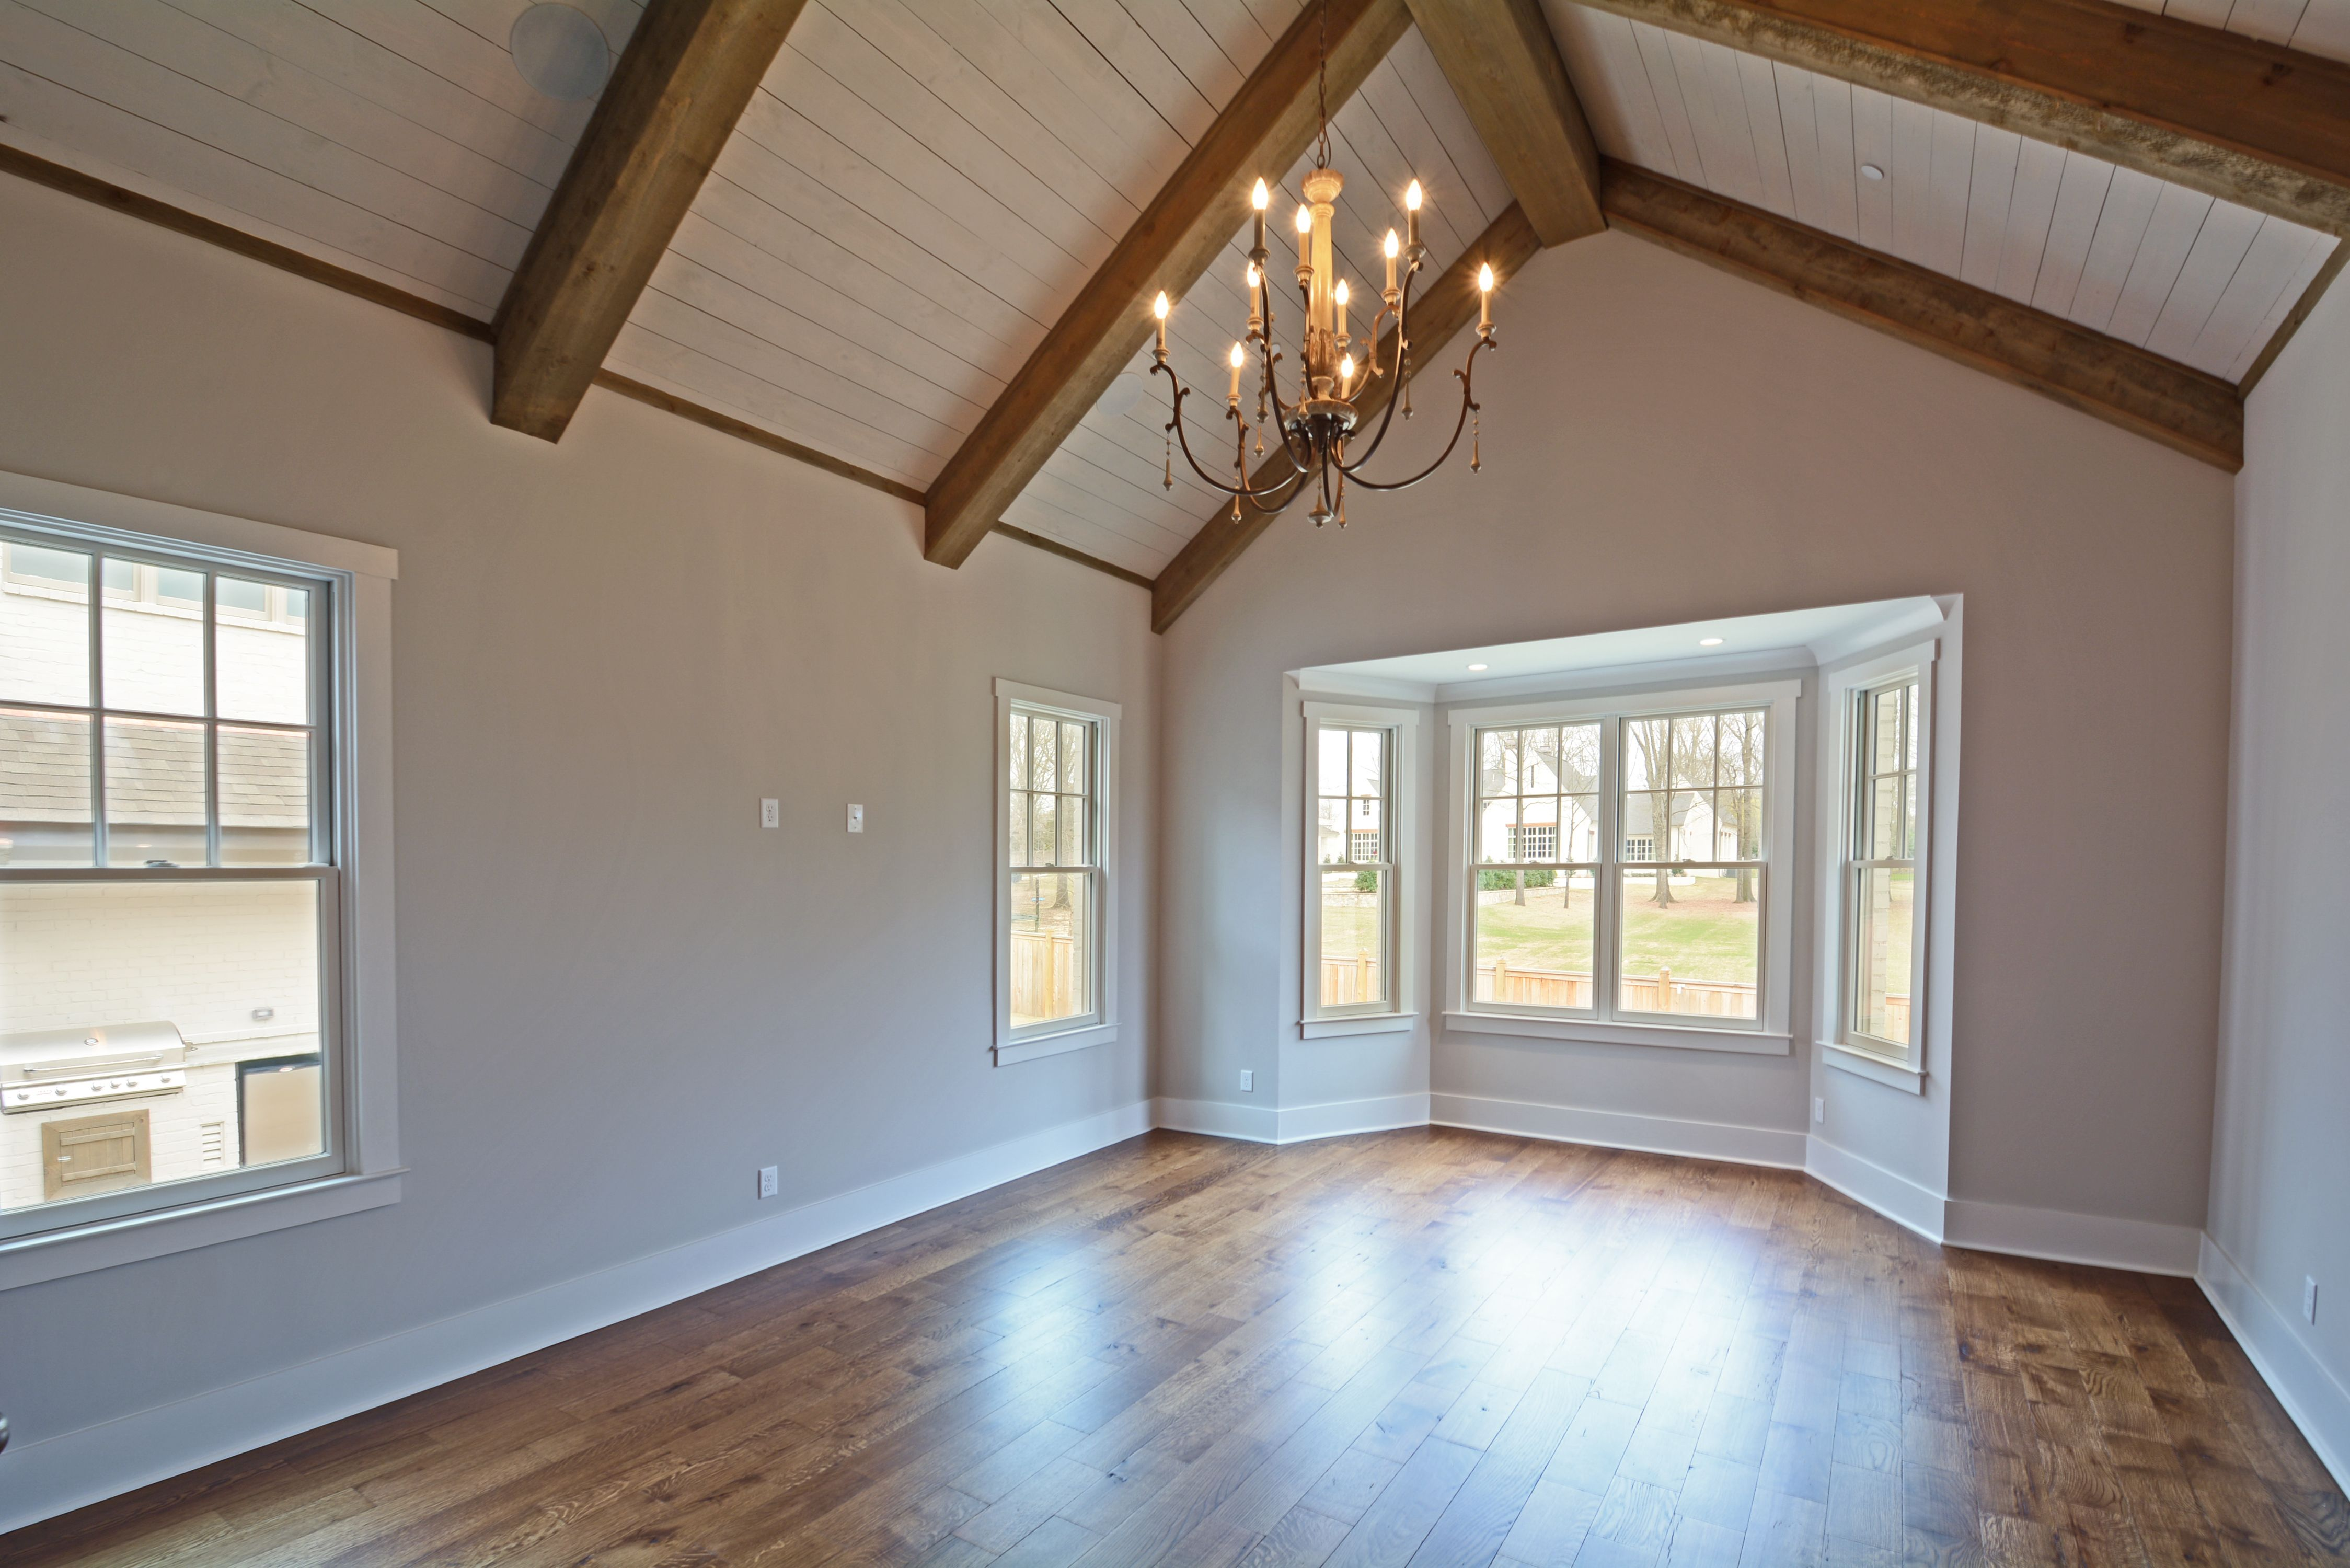 Check out that shiplap, vaulted ceiling! www.yourmagnoliahome.com ...